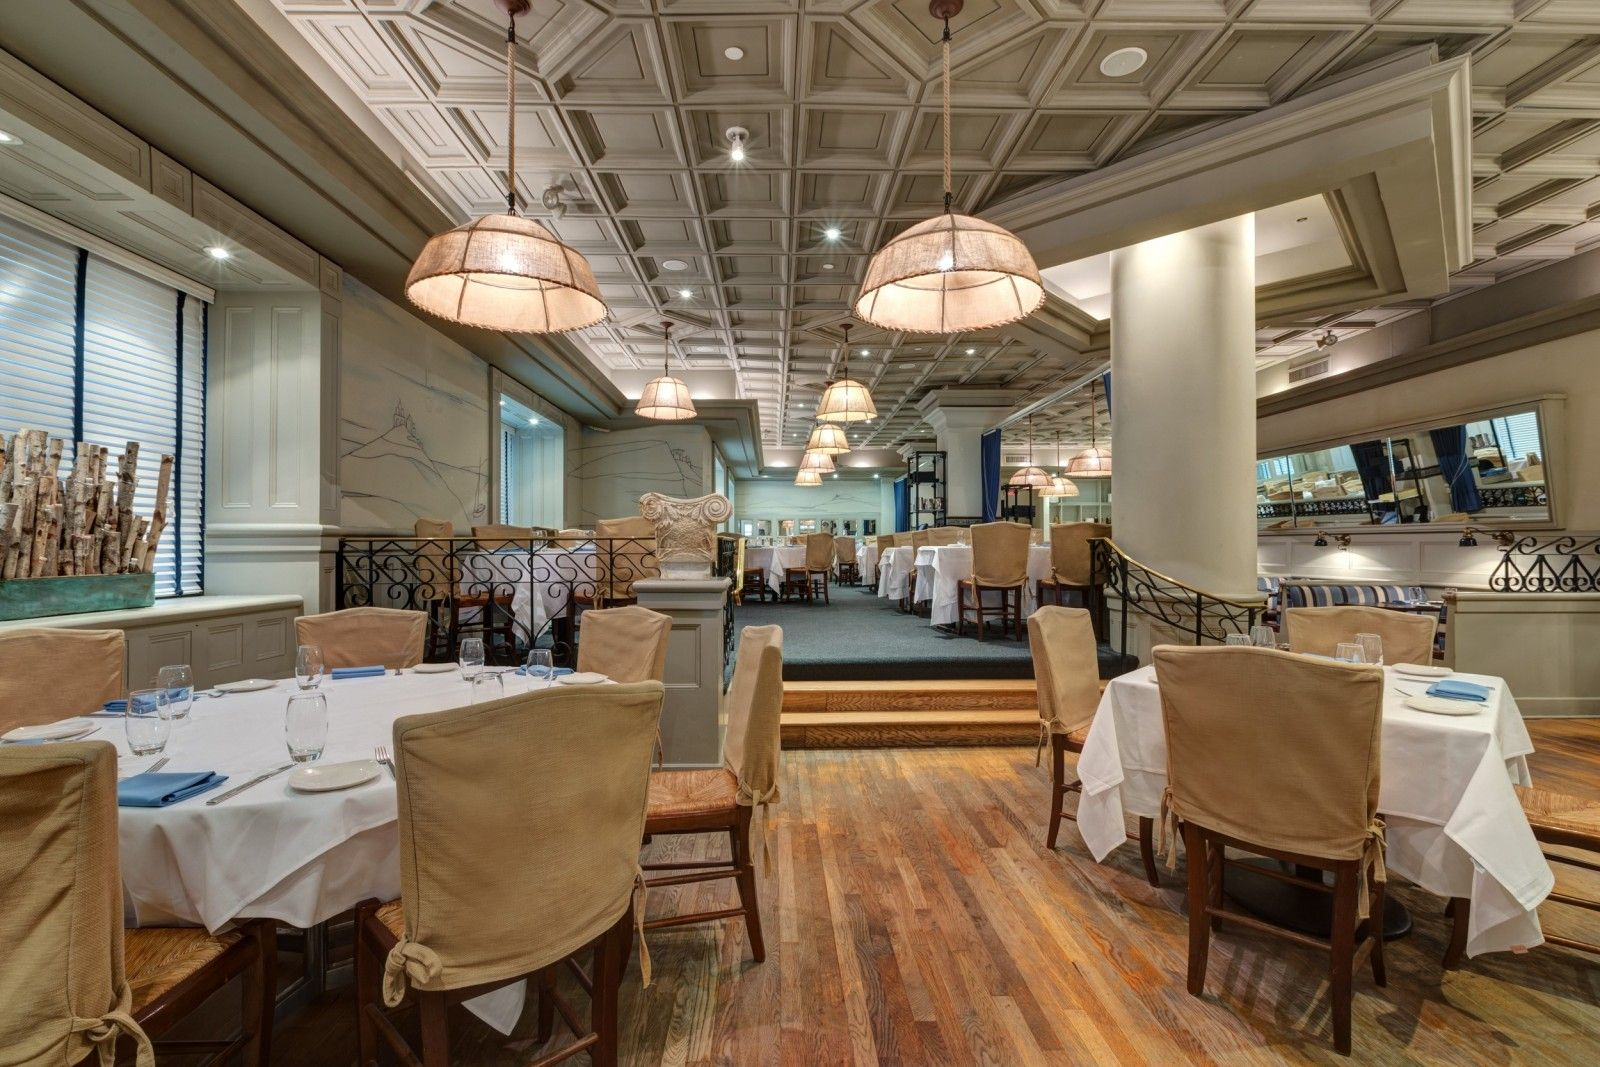 The Wellington Hotel Offers Great Dining At Greek Restaurant Molyvos We Are Located In Midtown Manhattan Center Of New York City